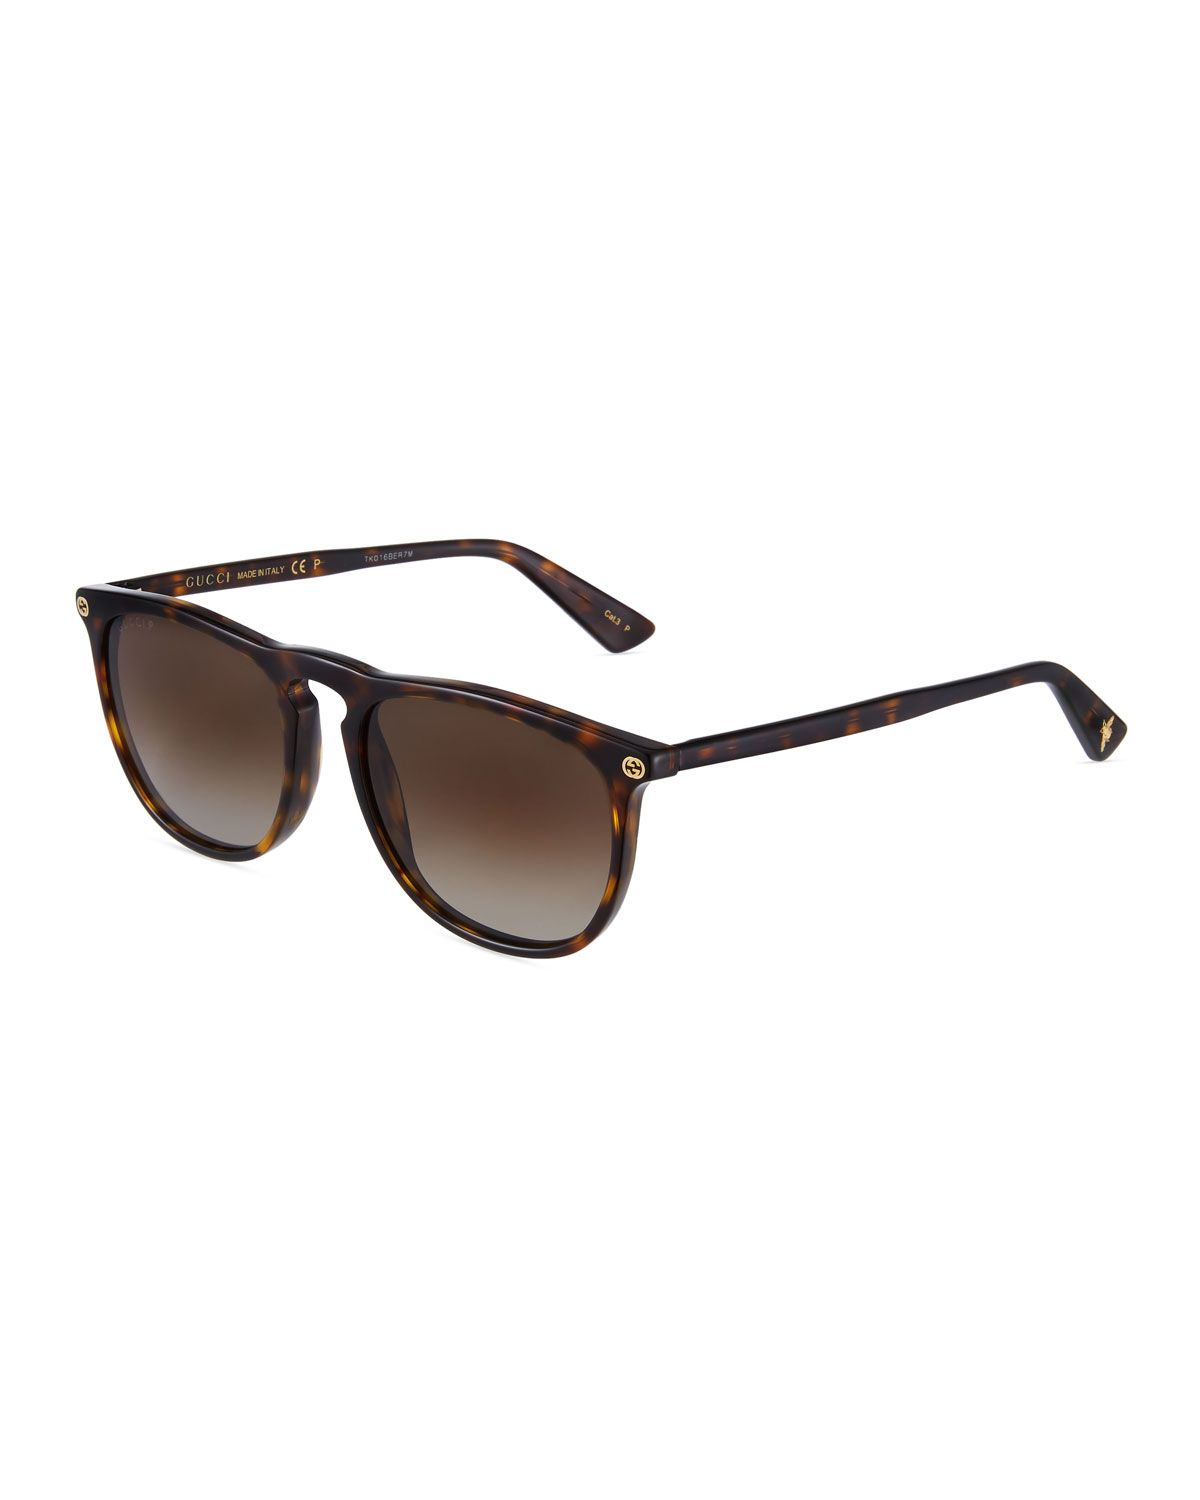 295011635e986 GUCCI MEN S SQUARE ACETATE PANTOS SUNGLASSES.  gucci